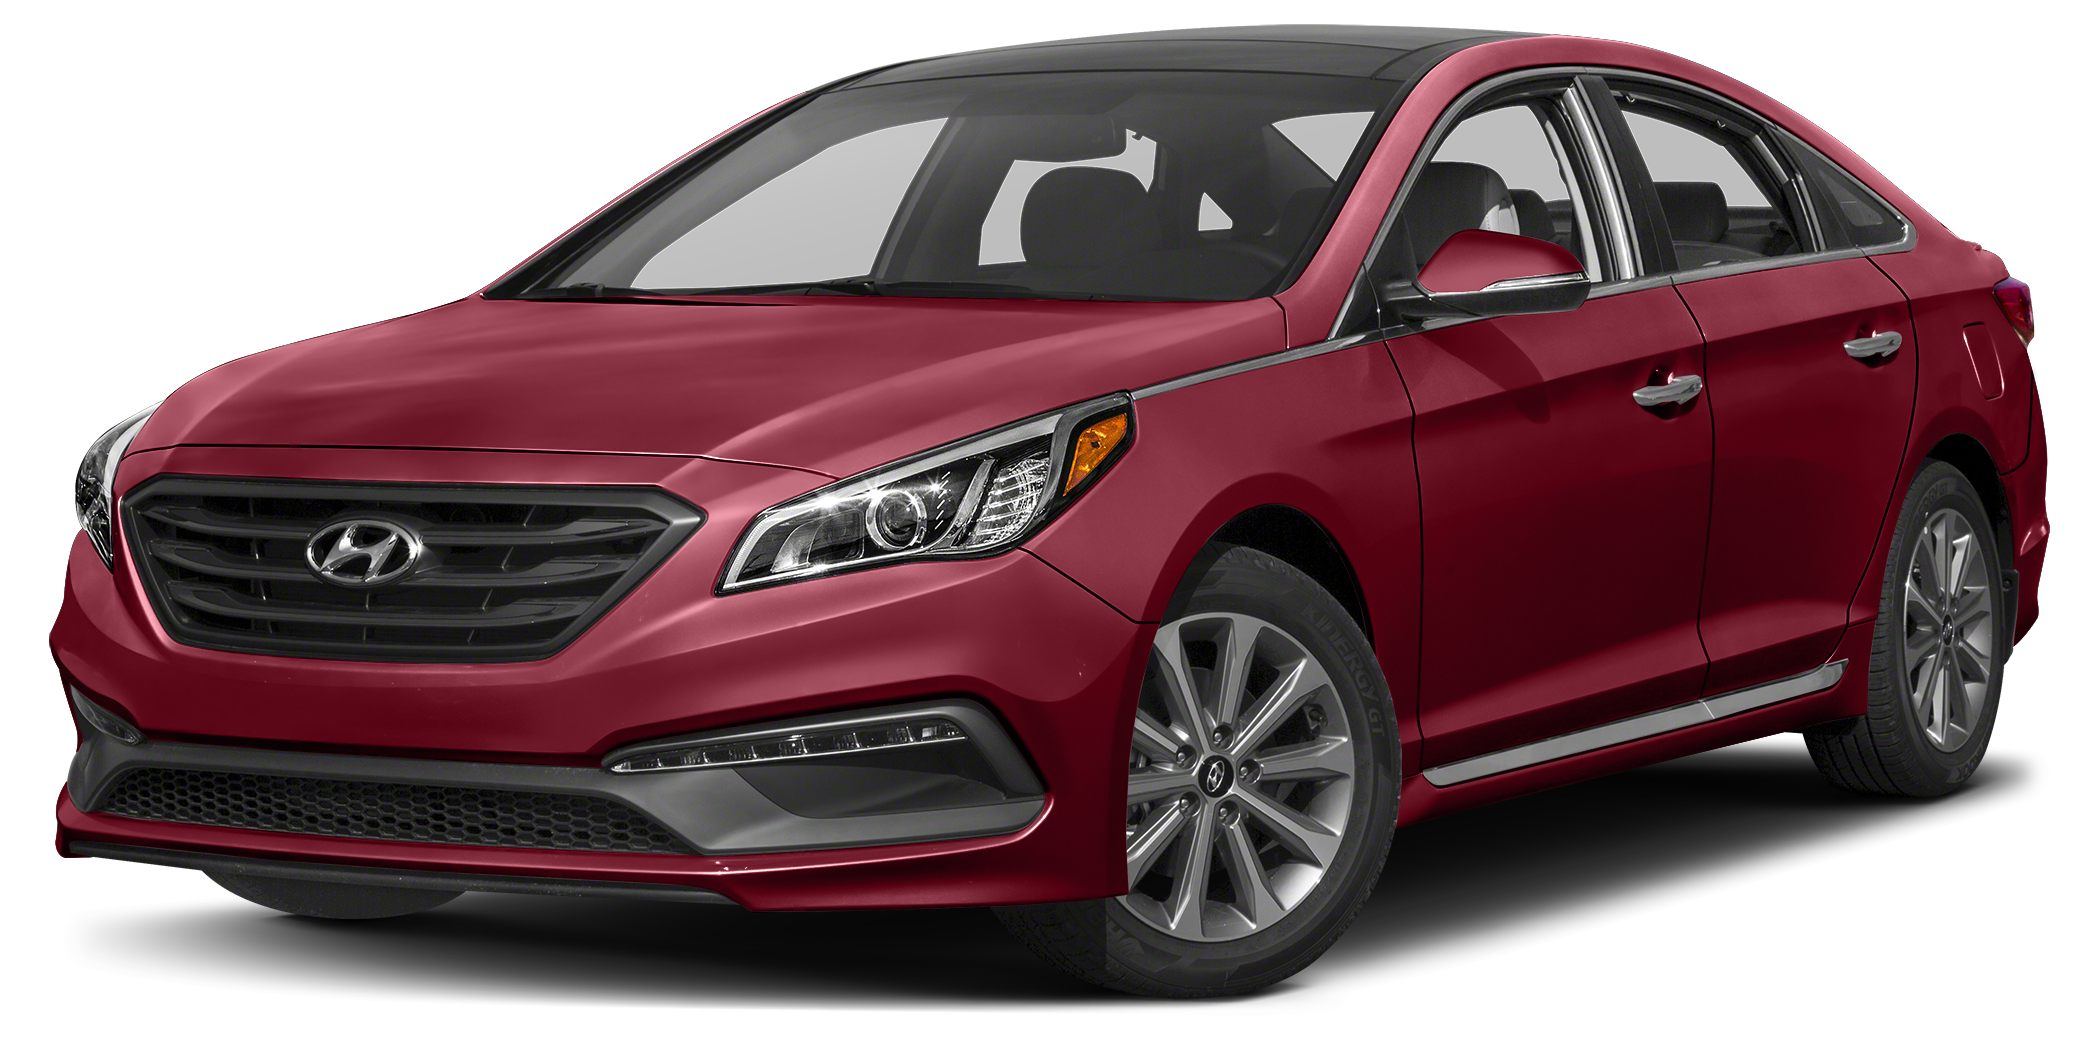 2016 Hyundai Sonata Limited Bluetooth Miles 11Color Venetian Red Stock 14648 VIN 5NPE34AF5G